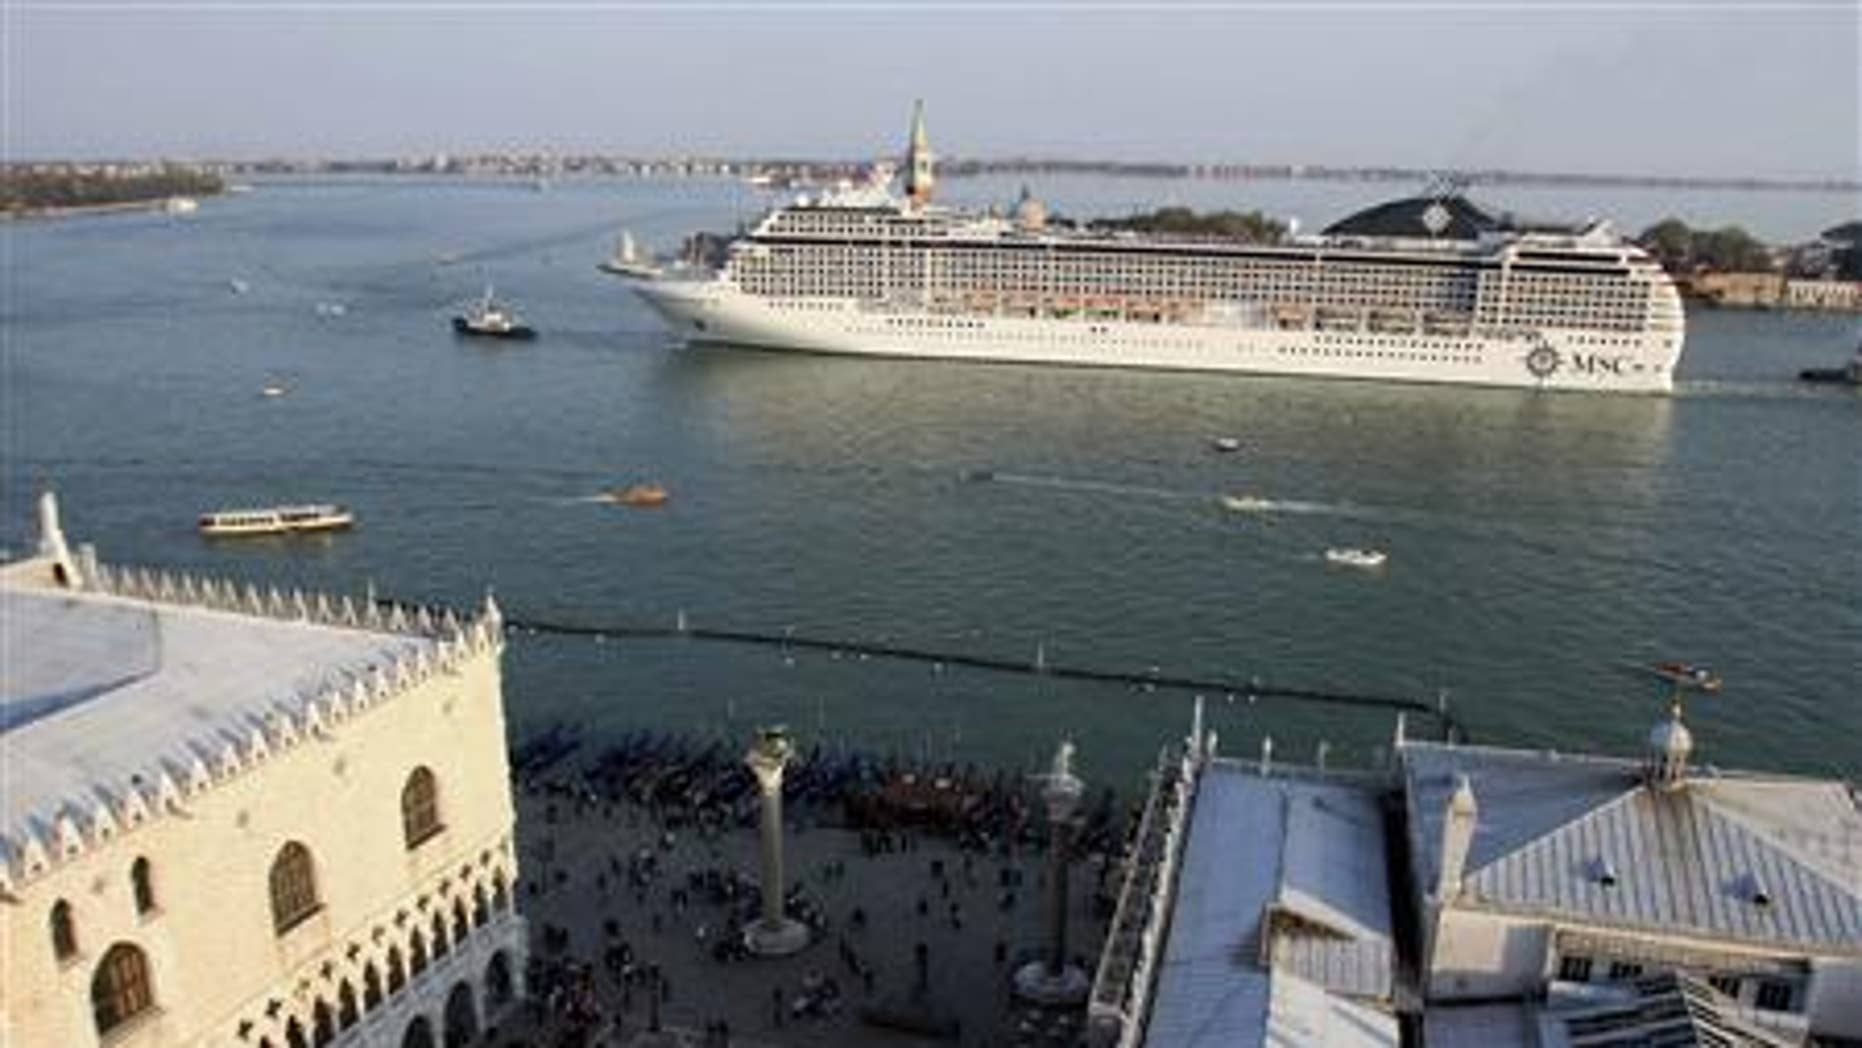 A cruise ship sails in the Venice lagoon close to Doge.